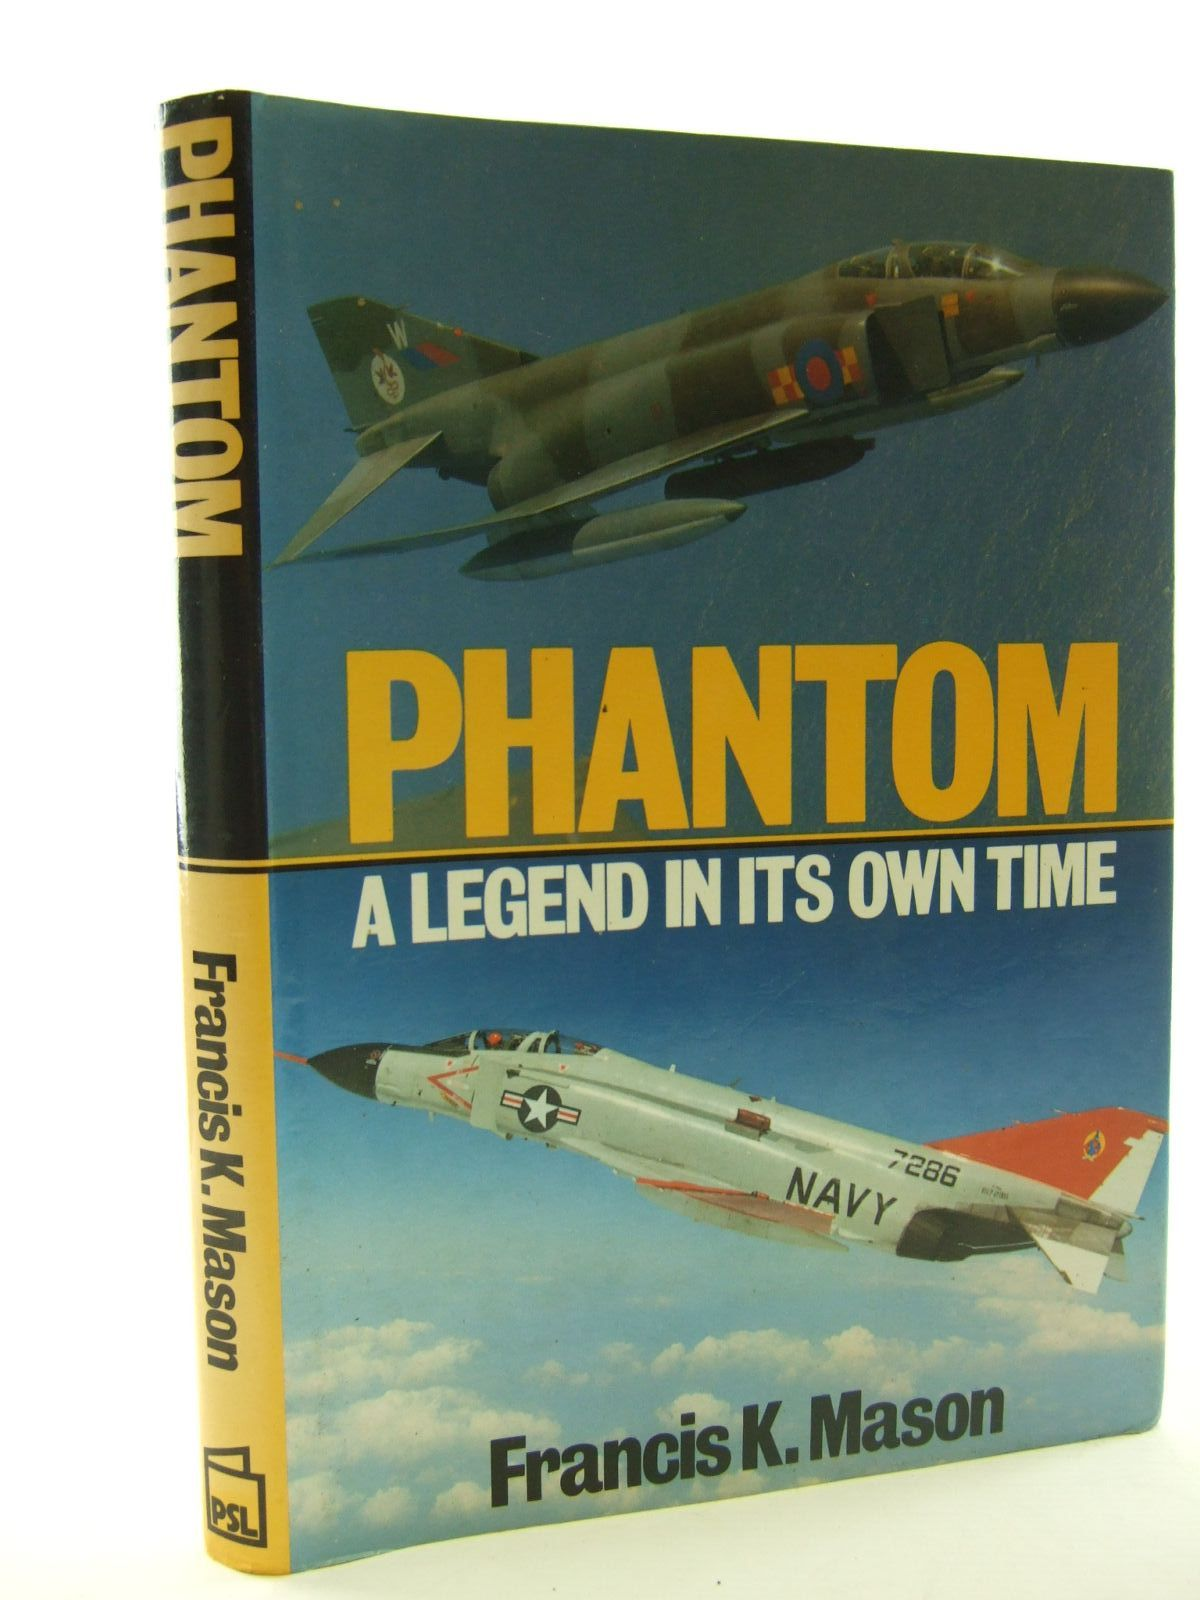 Photo of PHANTOM A LEGEND IN ITS OWN TIME written by Mason, Francis K. published by Patrick Stephens (STOCK CODE: 1706403)  for sale by Stella & Rose's Books